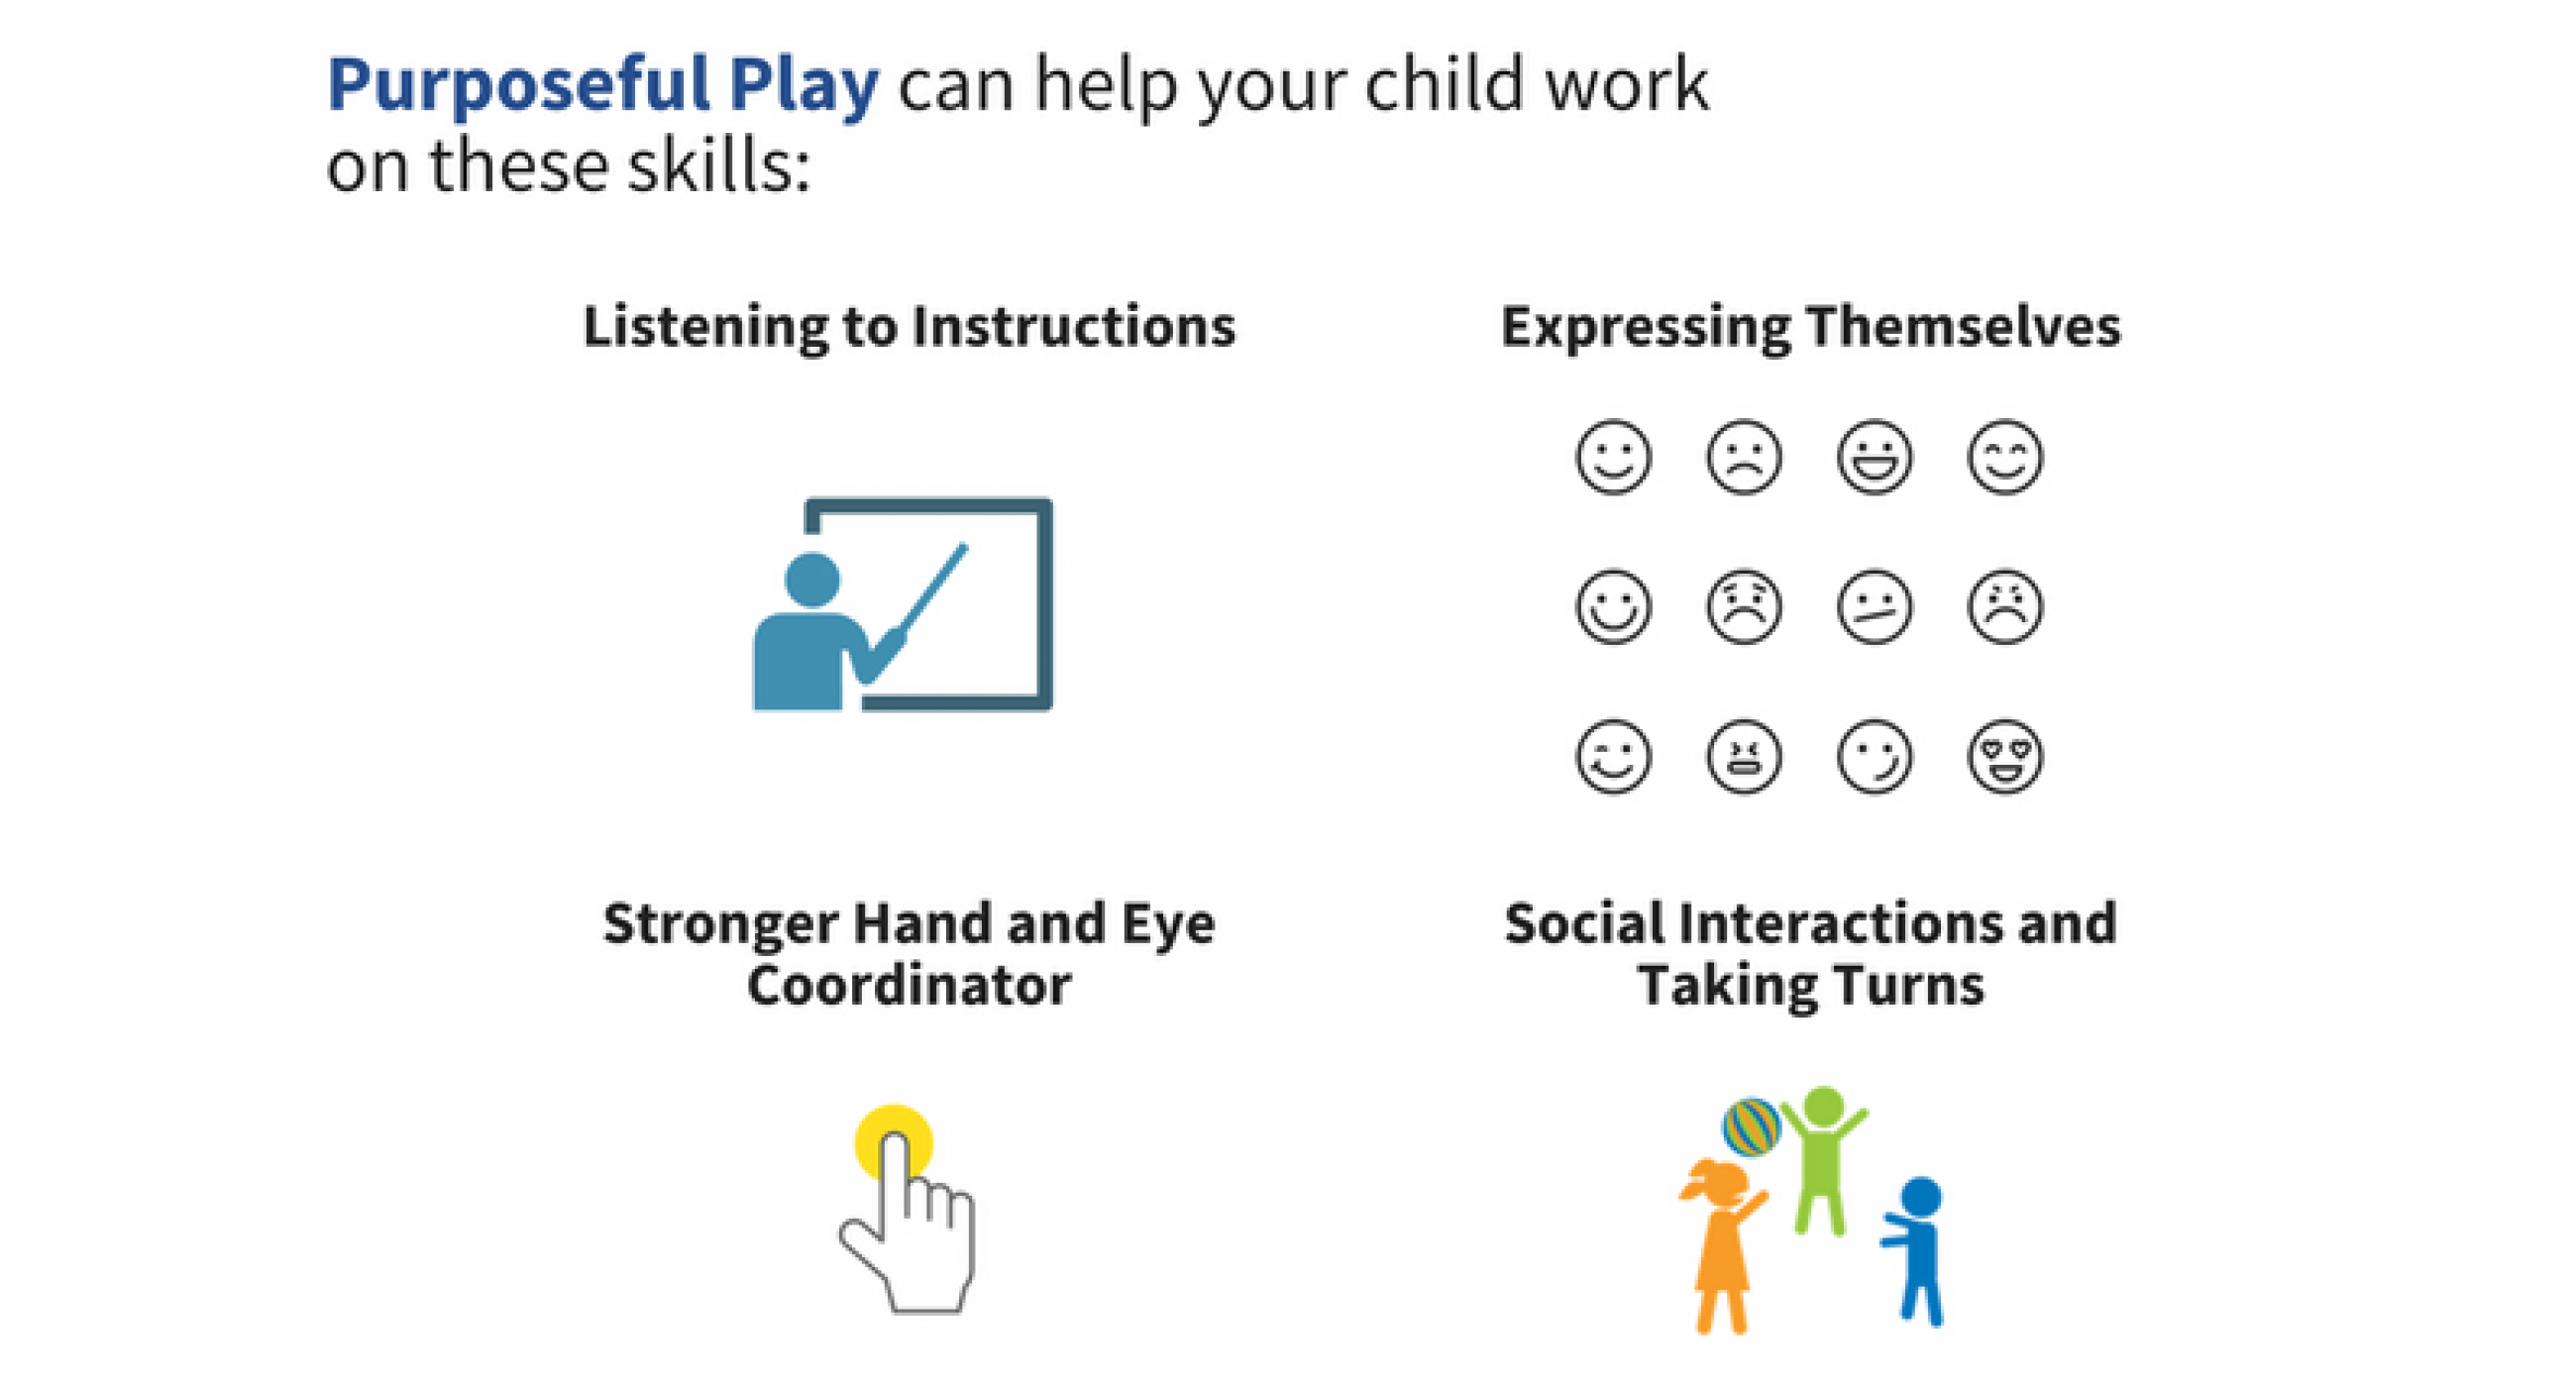 Purposeful Play can help your child work on skills like listening to instructions, expressing themselves, stronger hand and eye coordinator, and social interactions and taking turns.